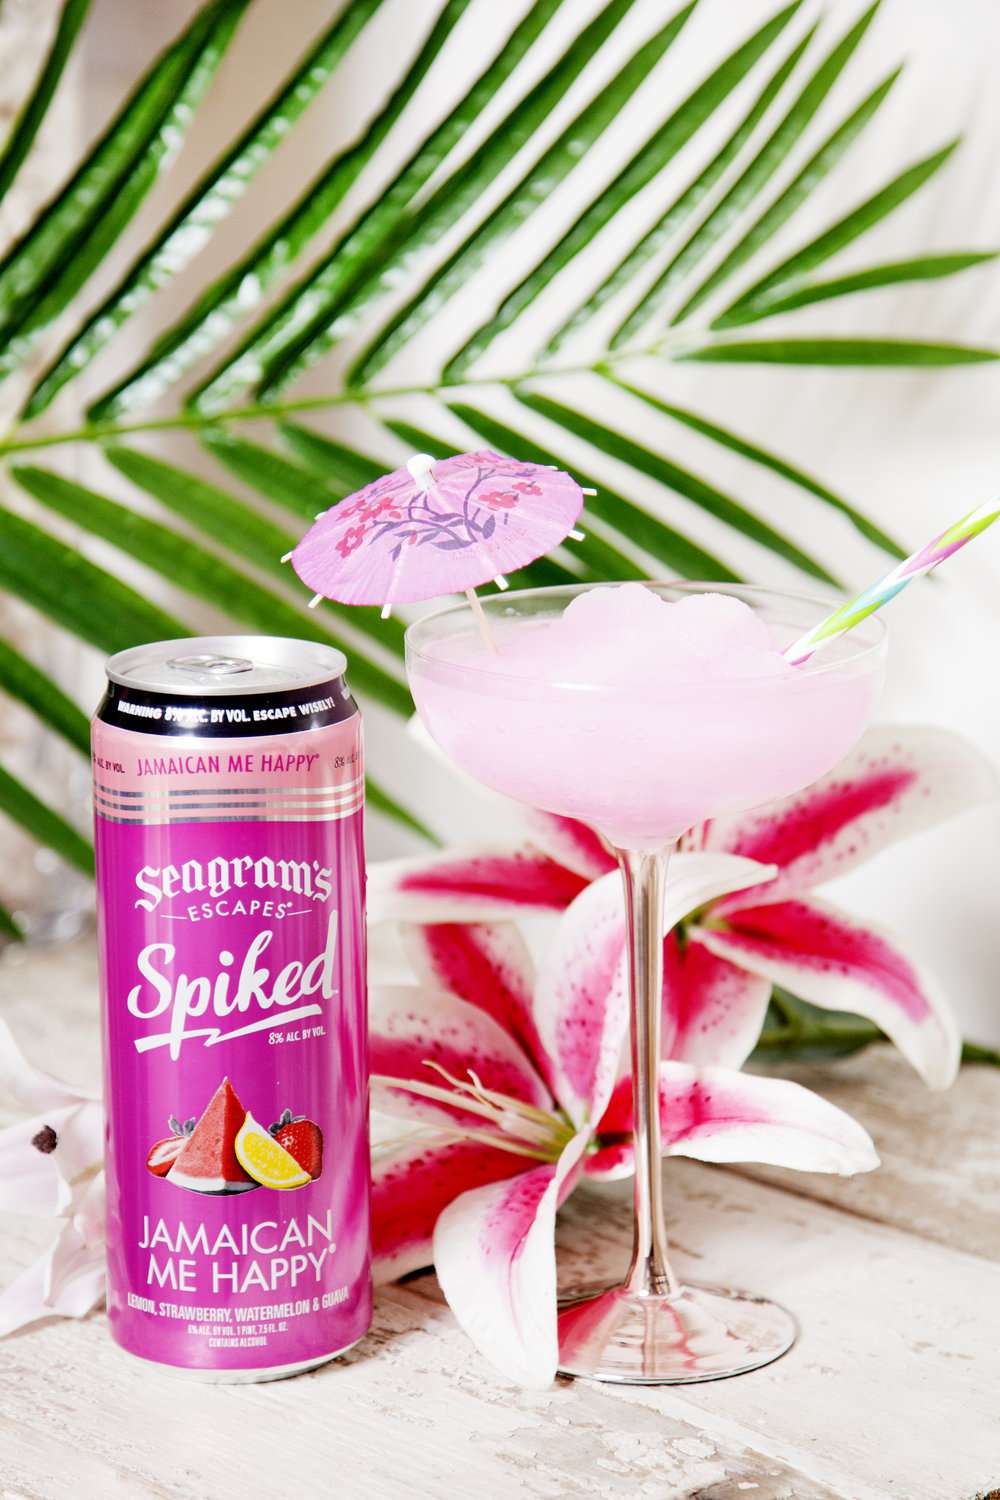 Seagram's Spiked Jamaican Me Happy